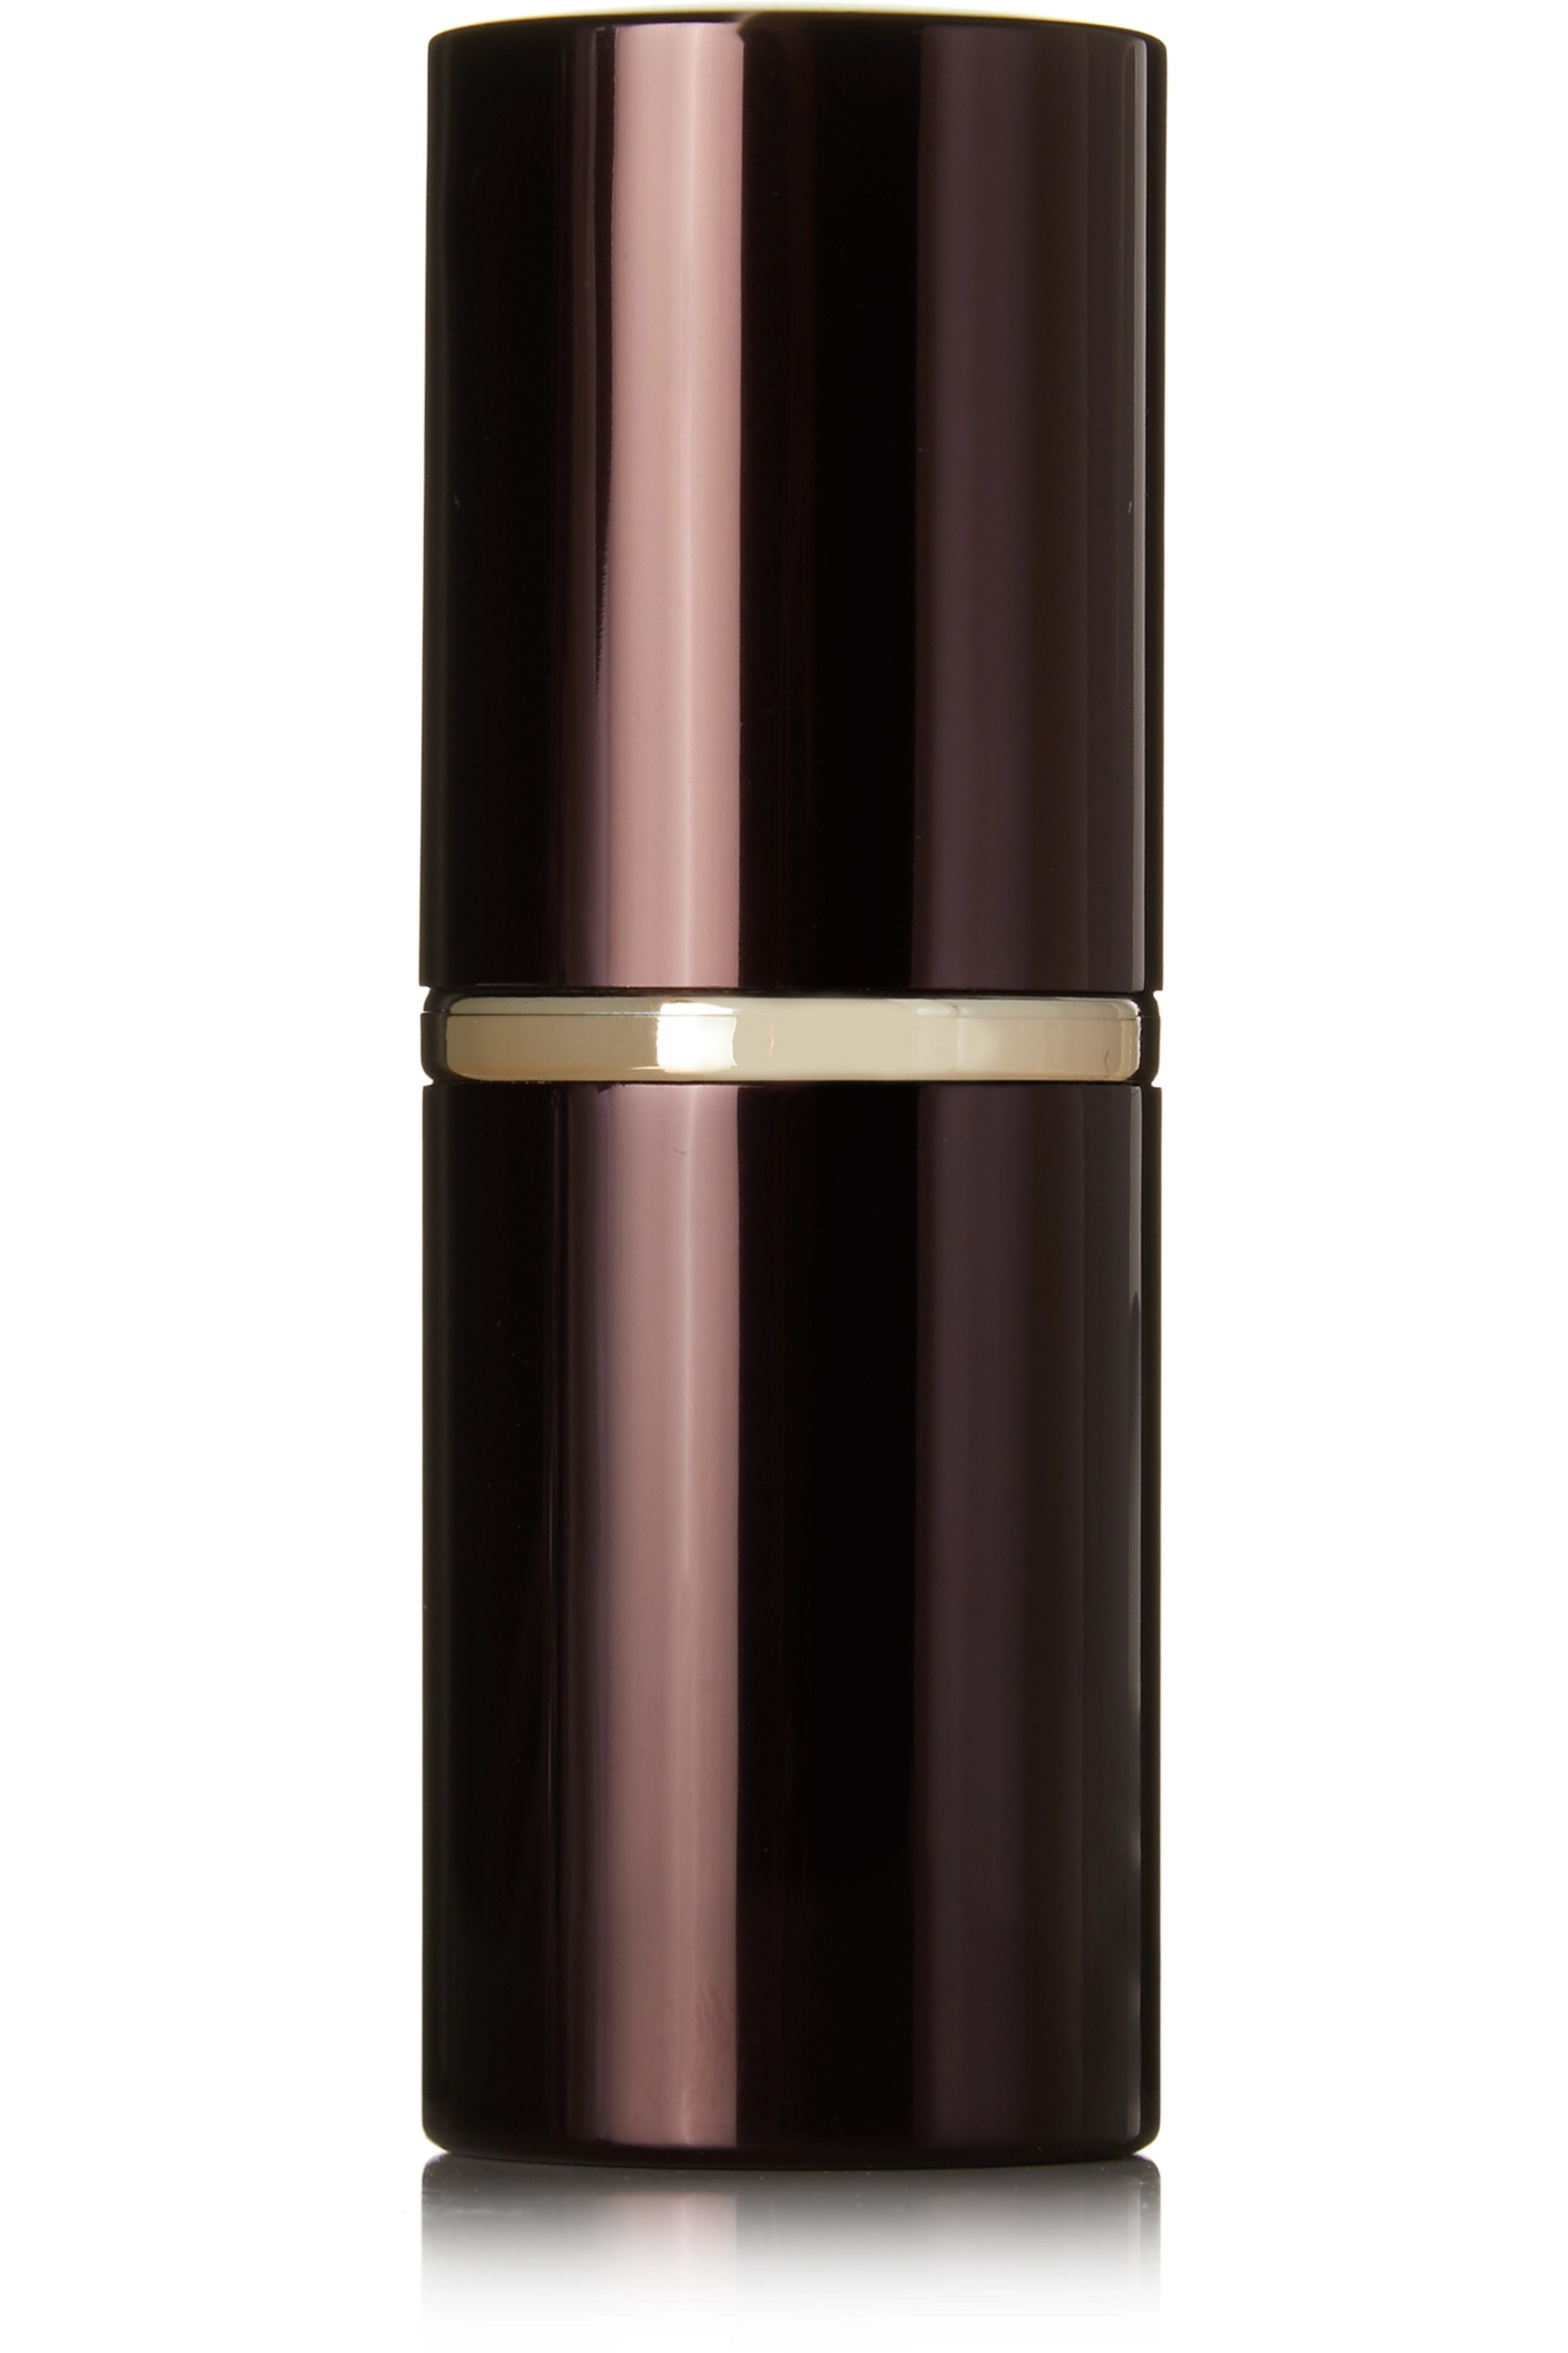 TOM FORD BEAUTY Fond de teint stick Invisible, 1.5 Cream